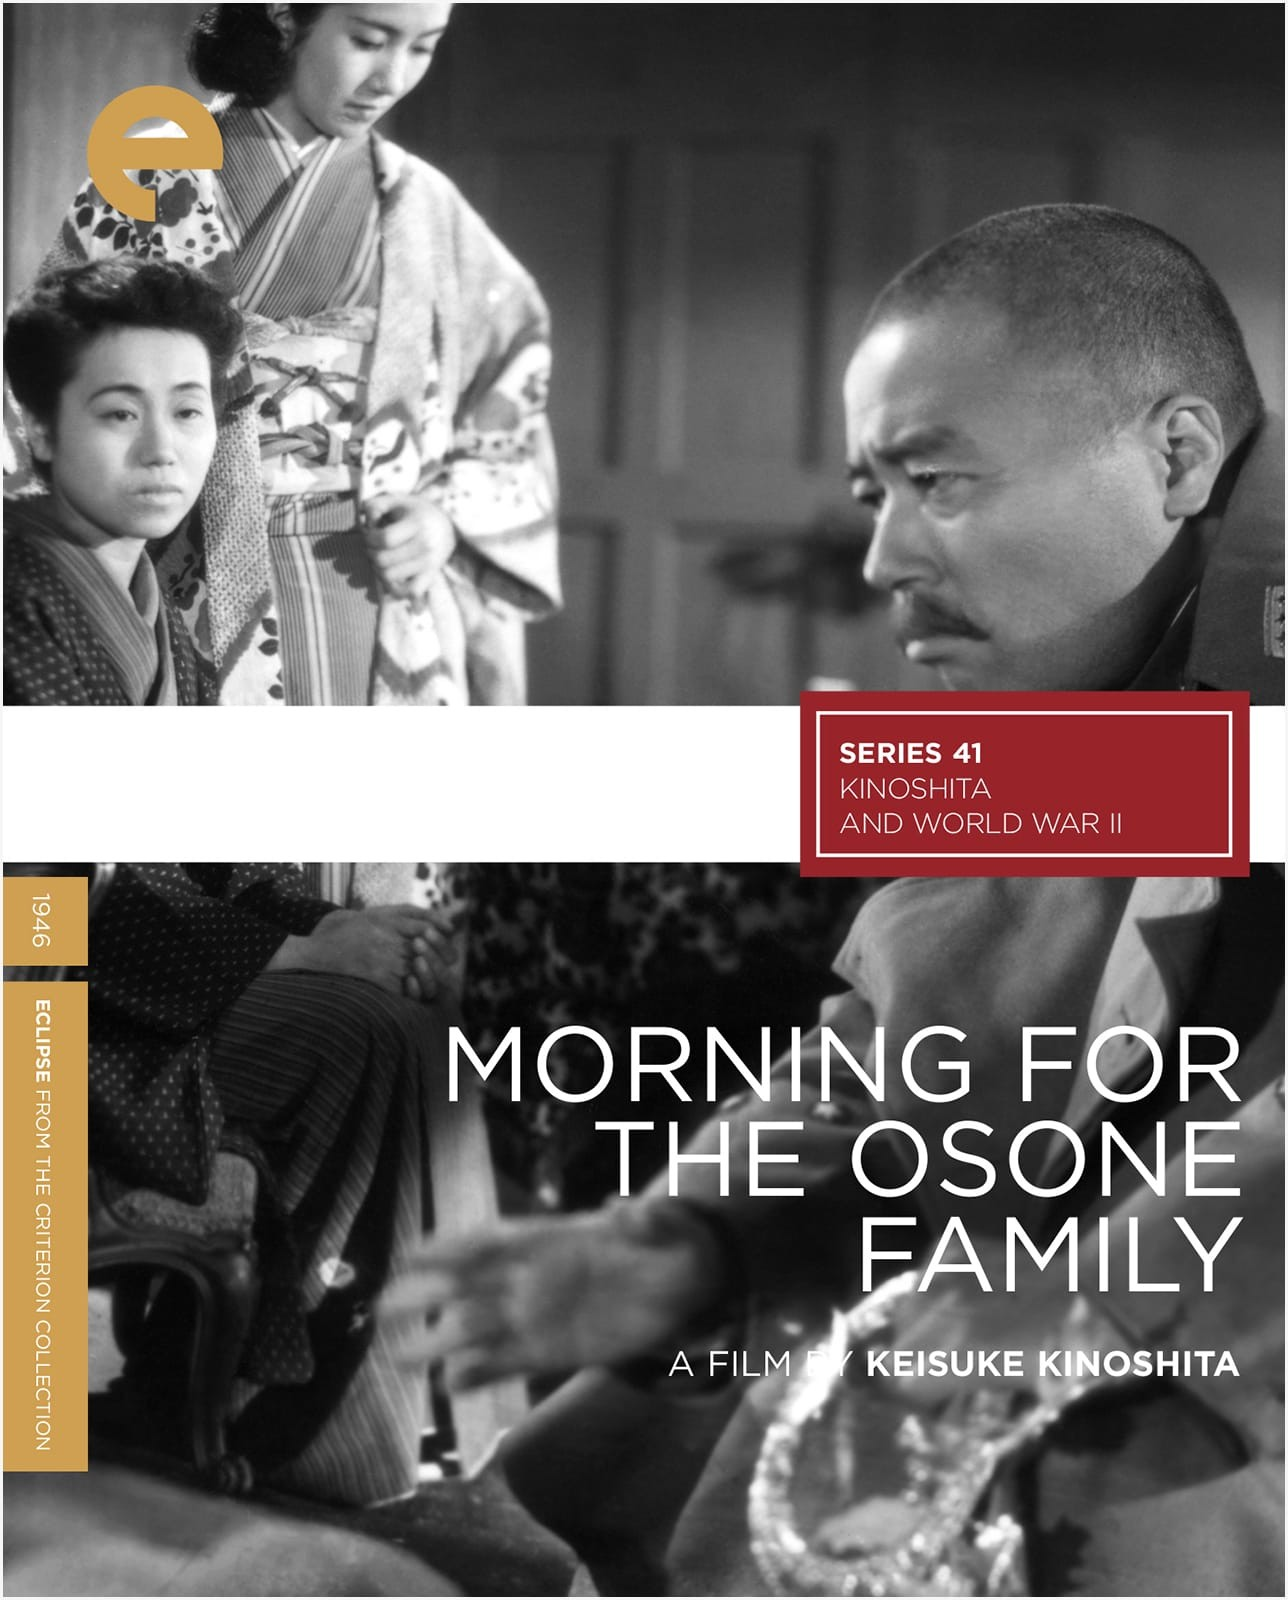 Morning for the Osone Family